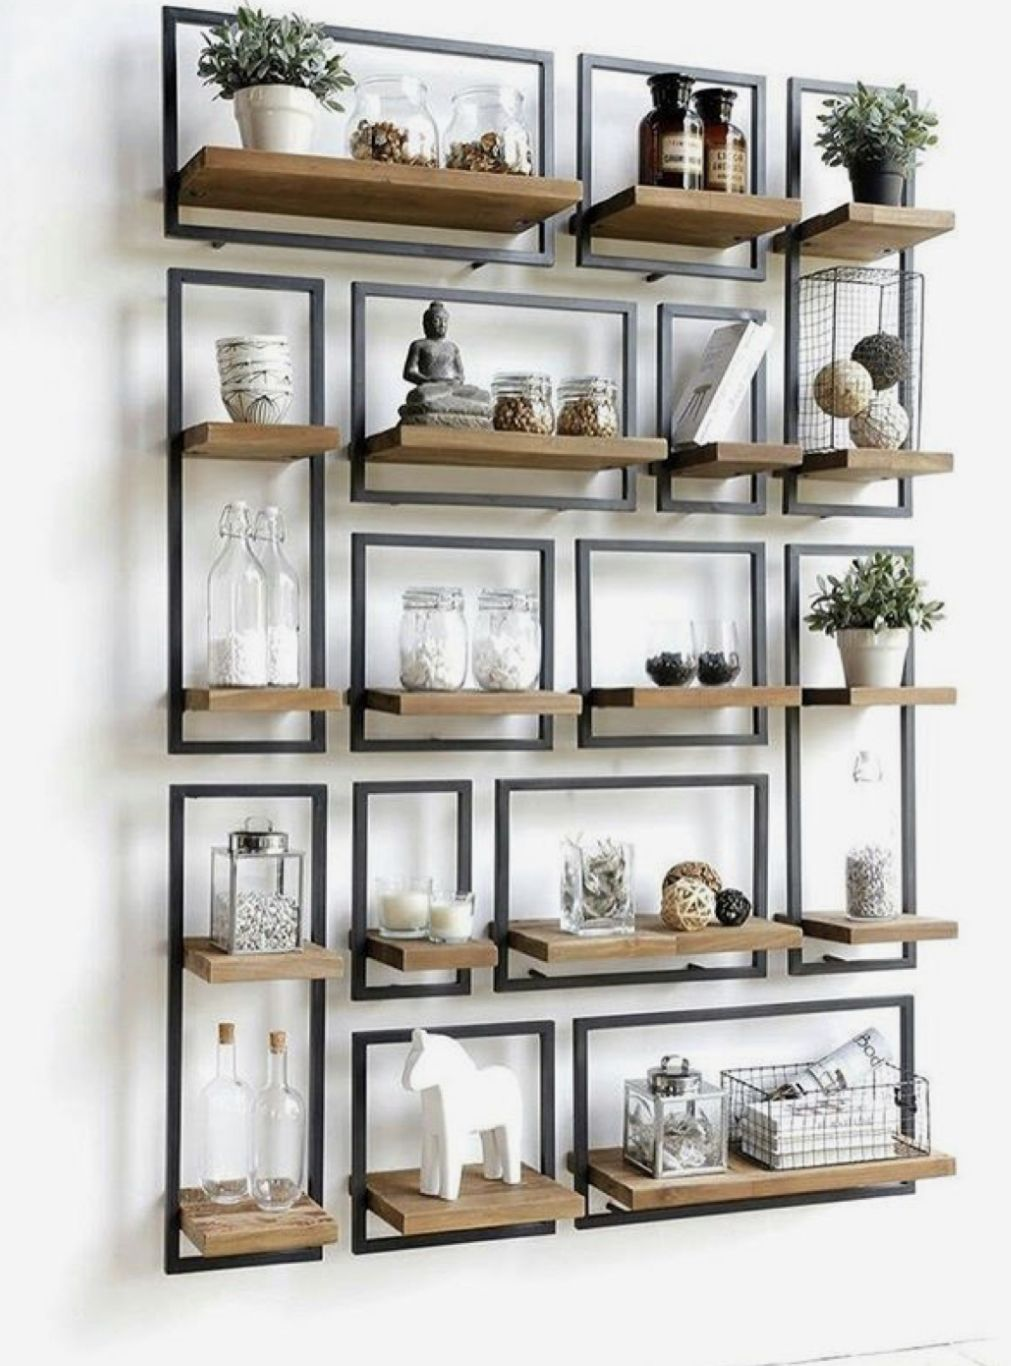 20+ Modern Industrial Iron and Wood Shelving Decor Ideas images